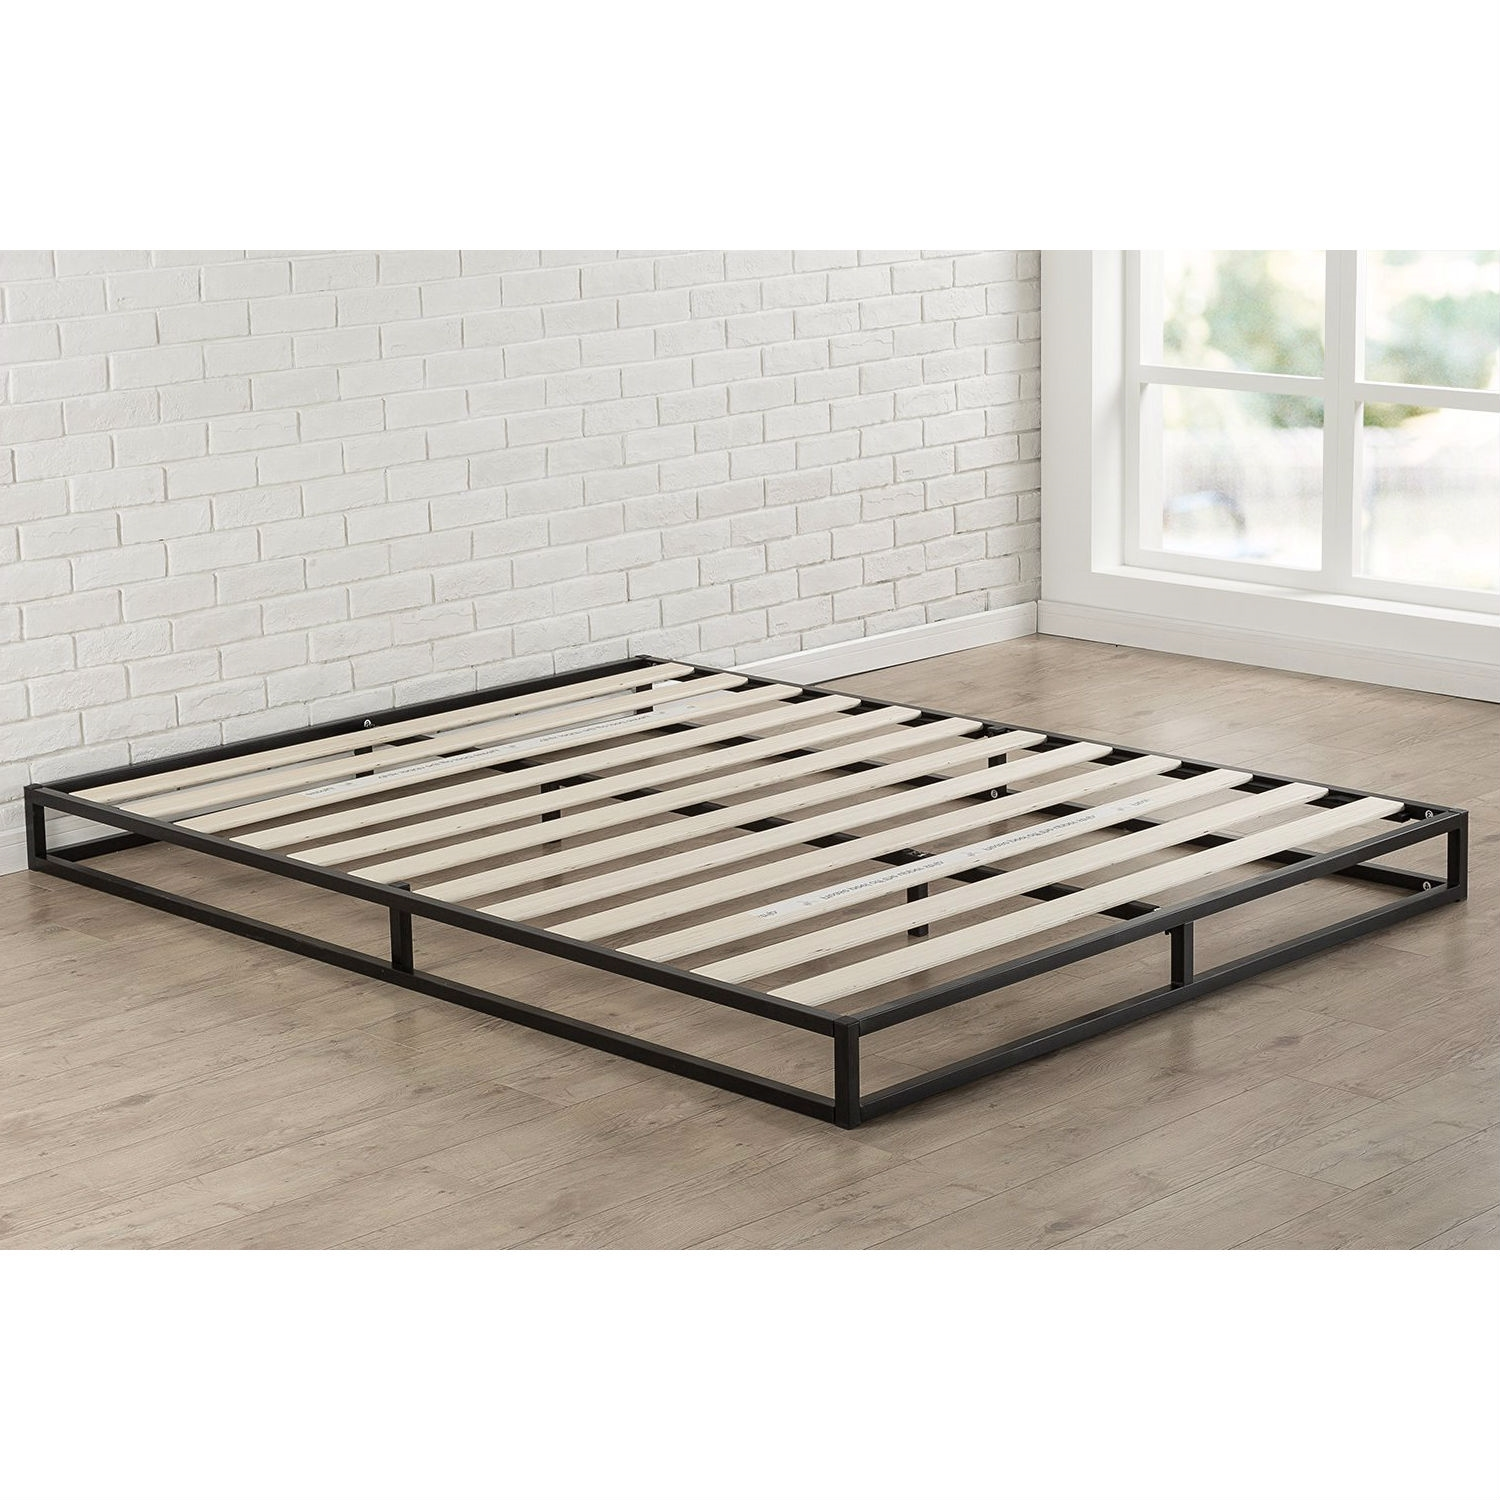 Bed Low Profile Twin 6 Inch Low Profile Platform Bed Frame With Modern